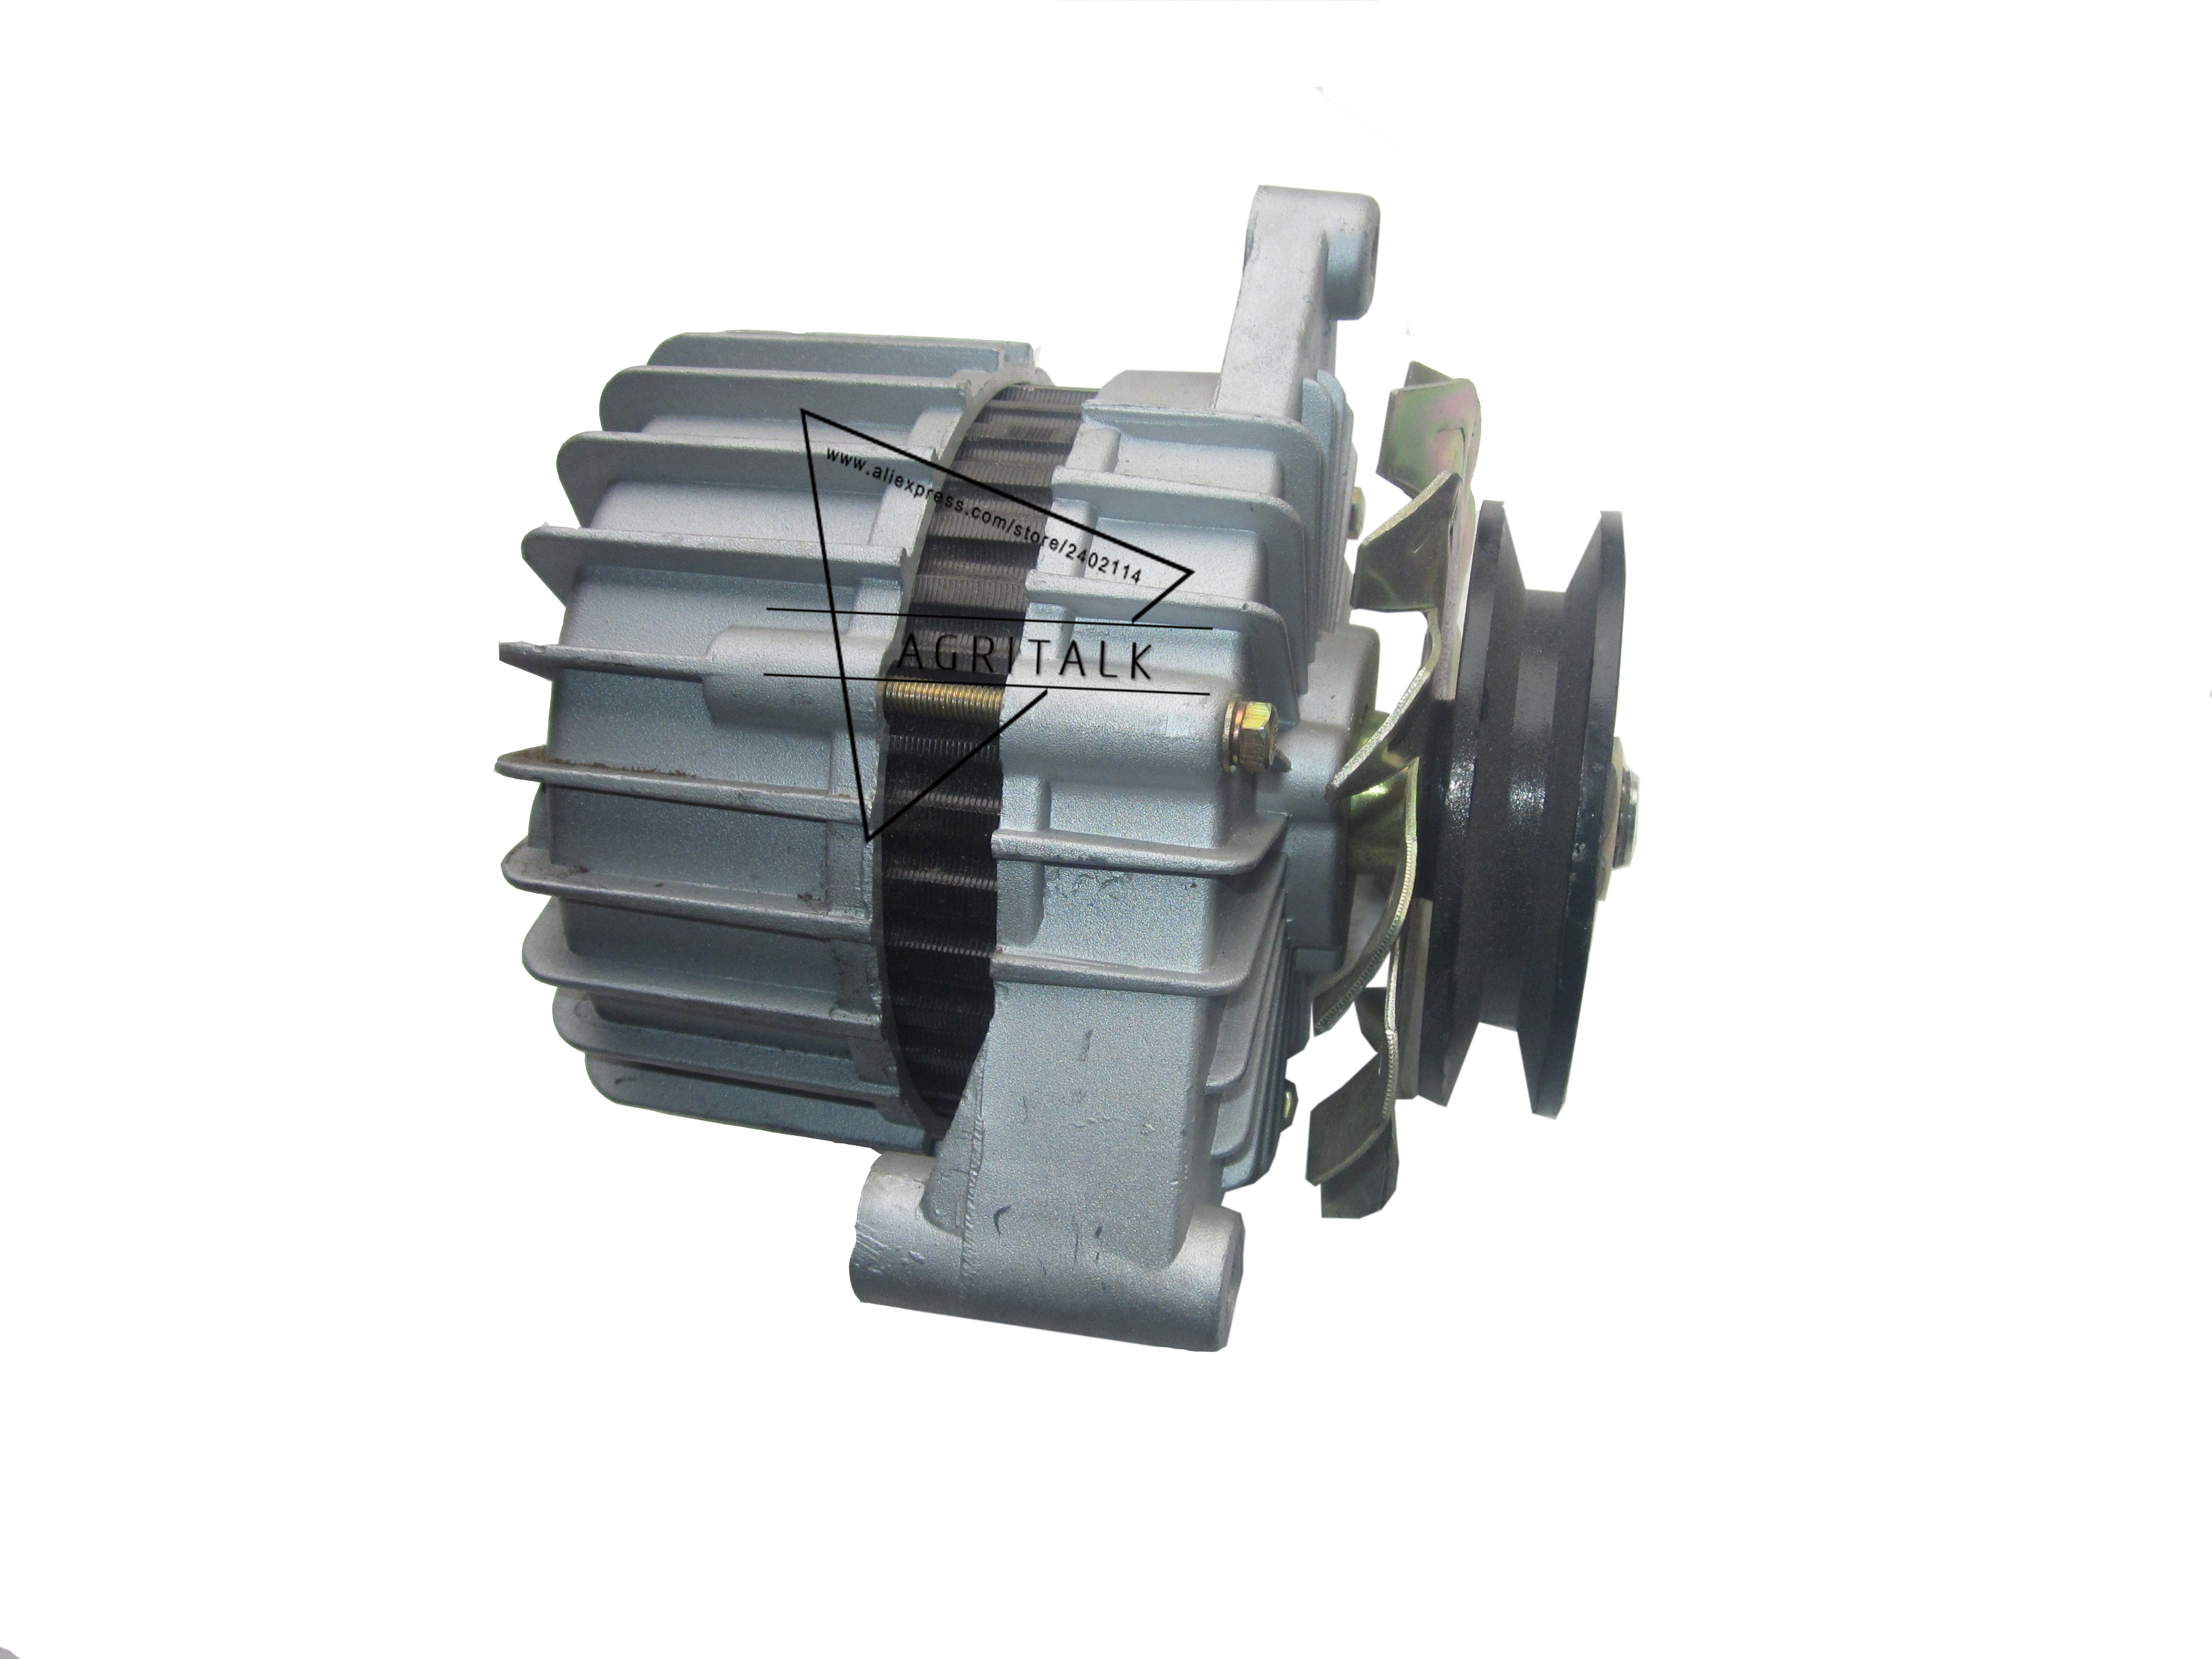 Alternator 2JF200, 12V  For Yangdong Y380T / Y385T Engine, Part Number: Y385T-1-12100